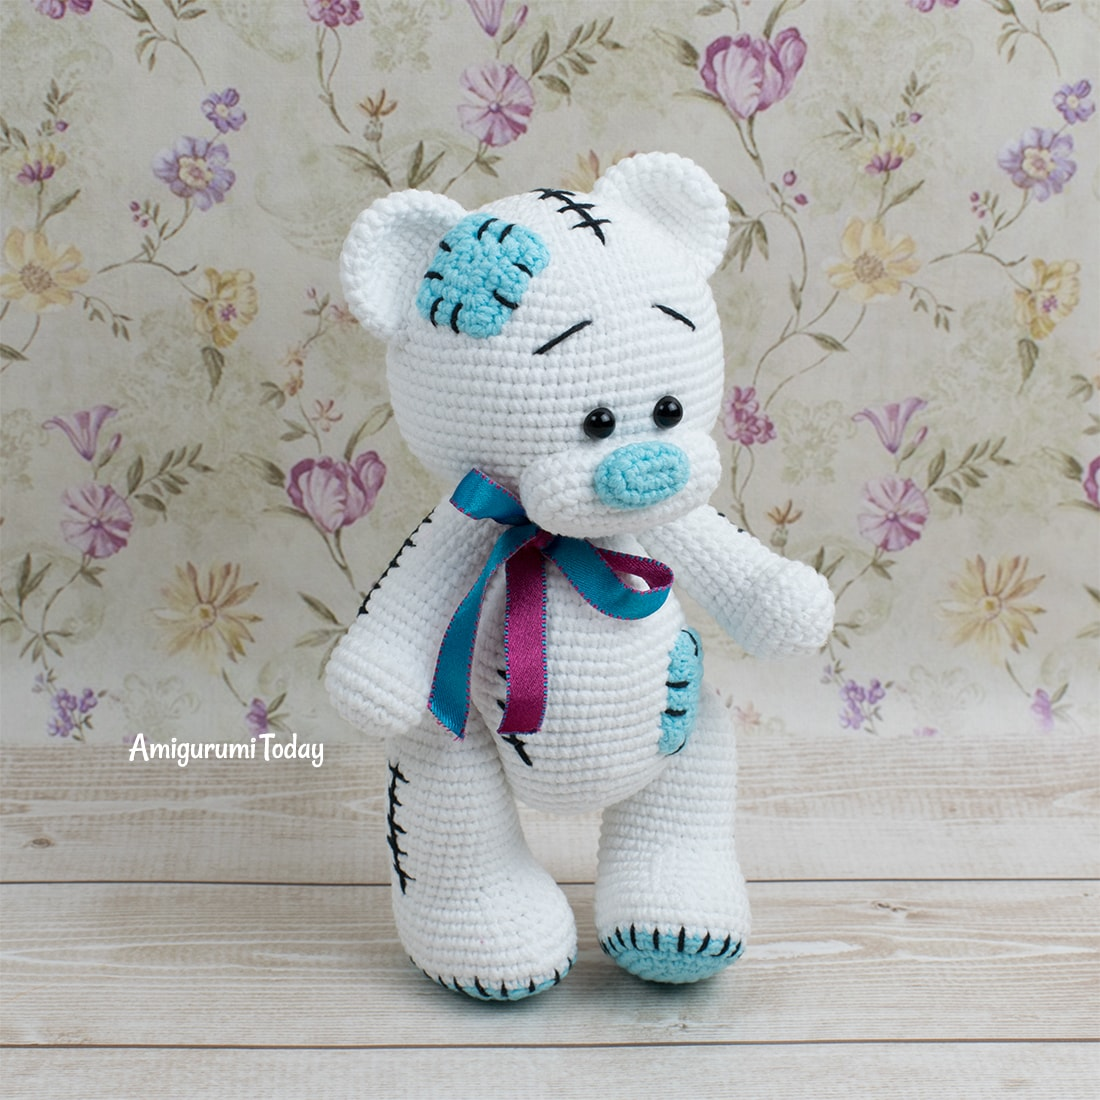 Free bear crochet pattern designed by Amigurumi Today